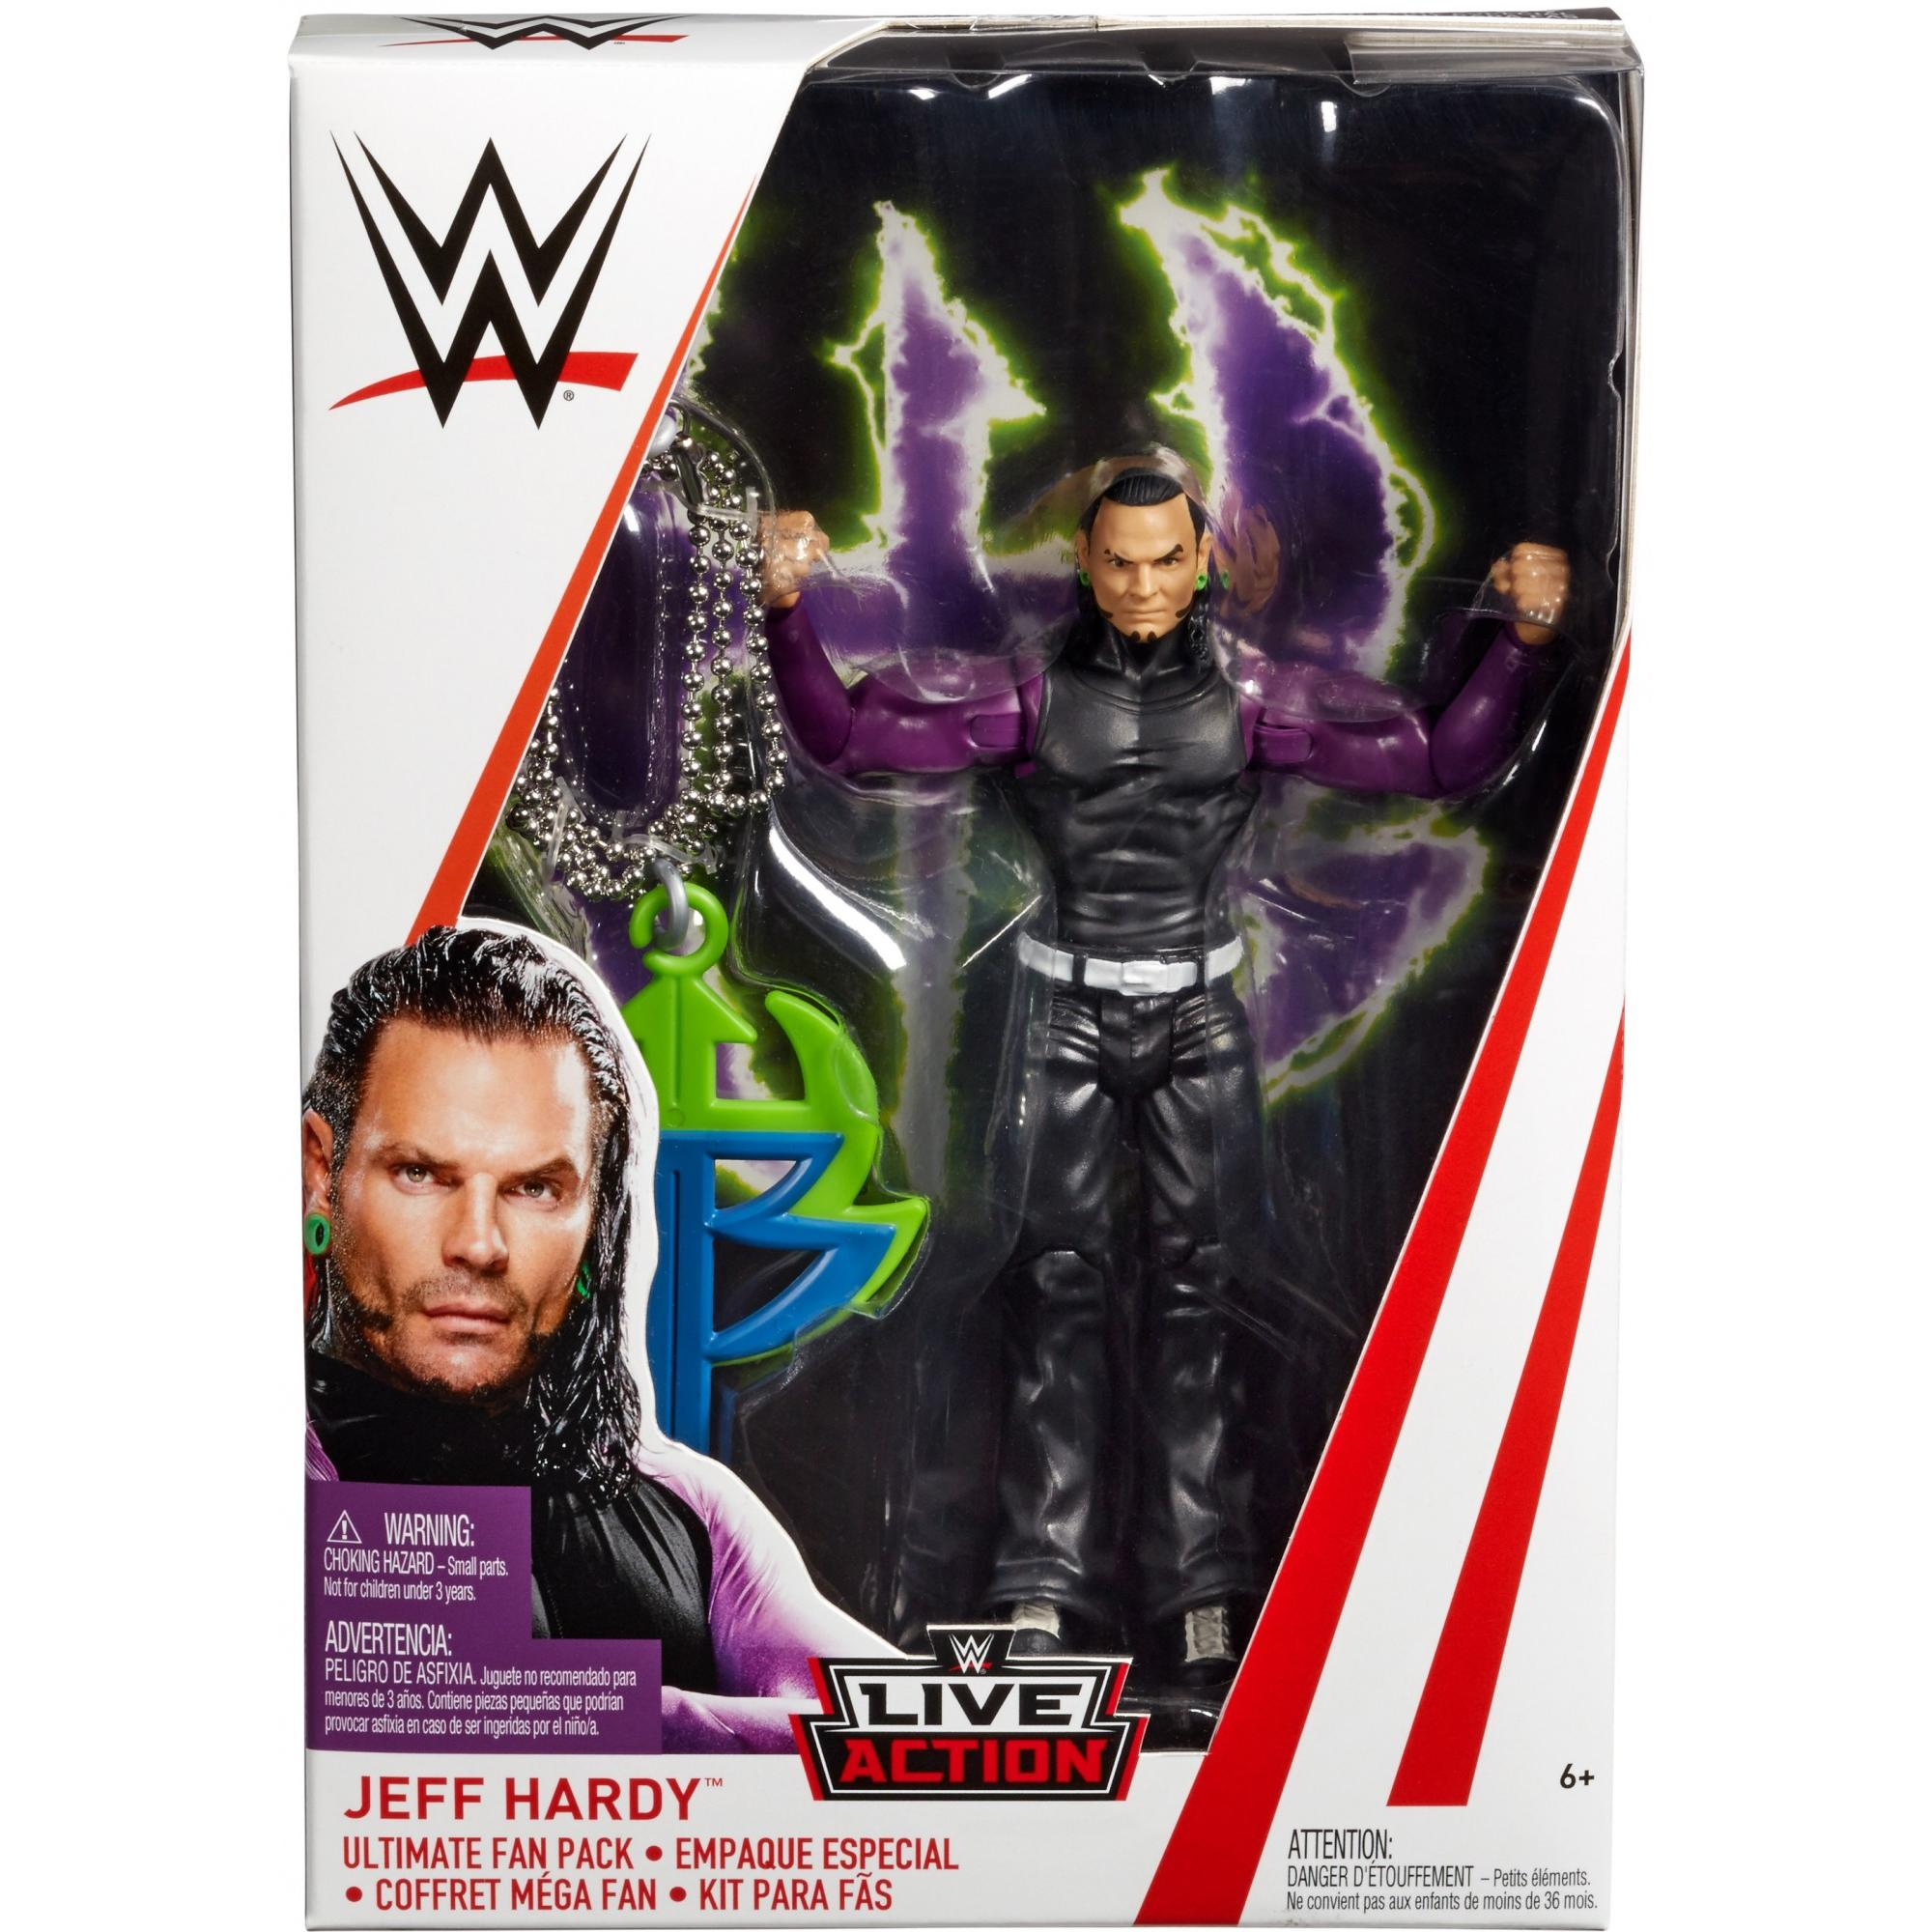 Wwe Jeff Hardy Ultimate Fan Pack Walmart